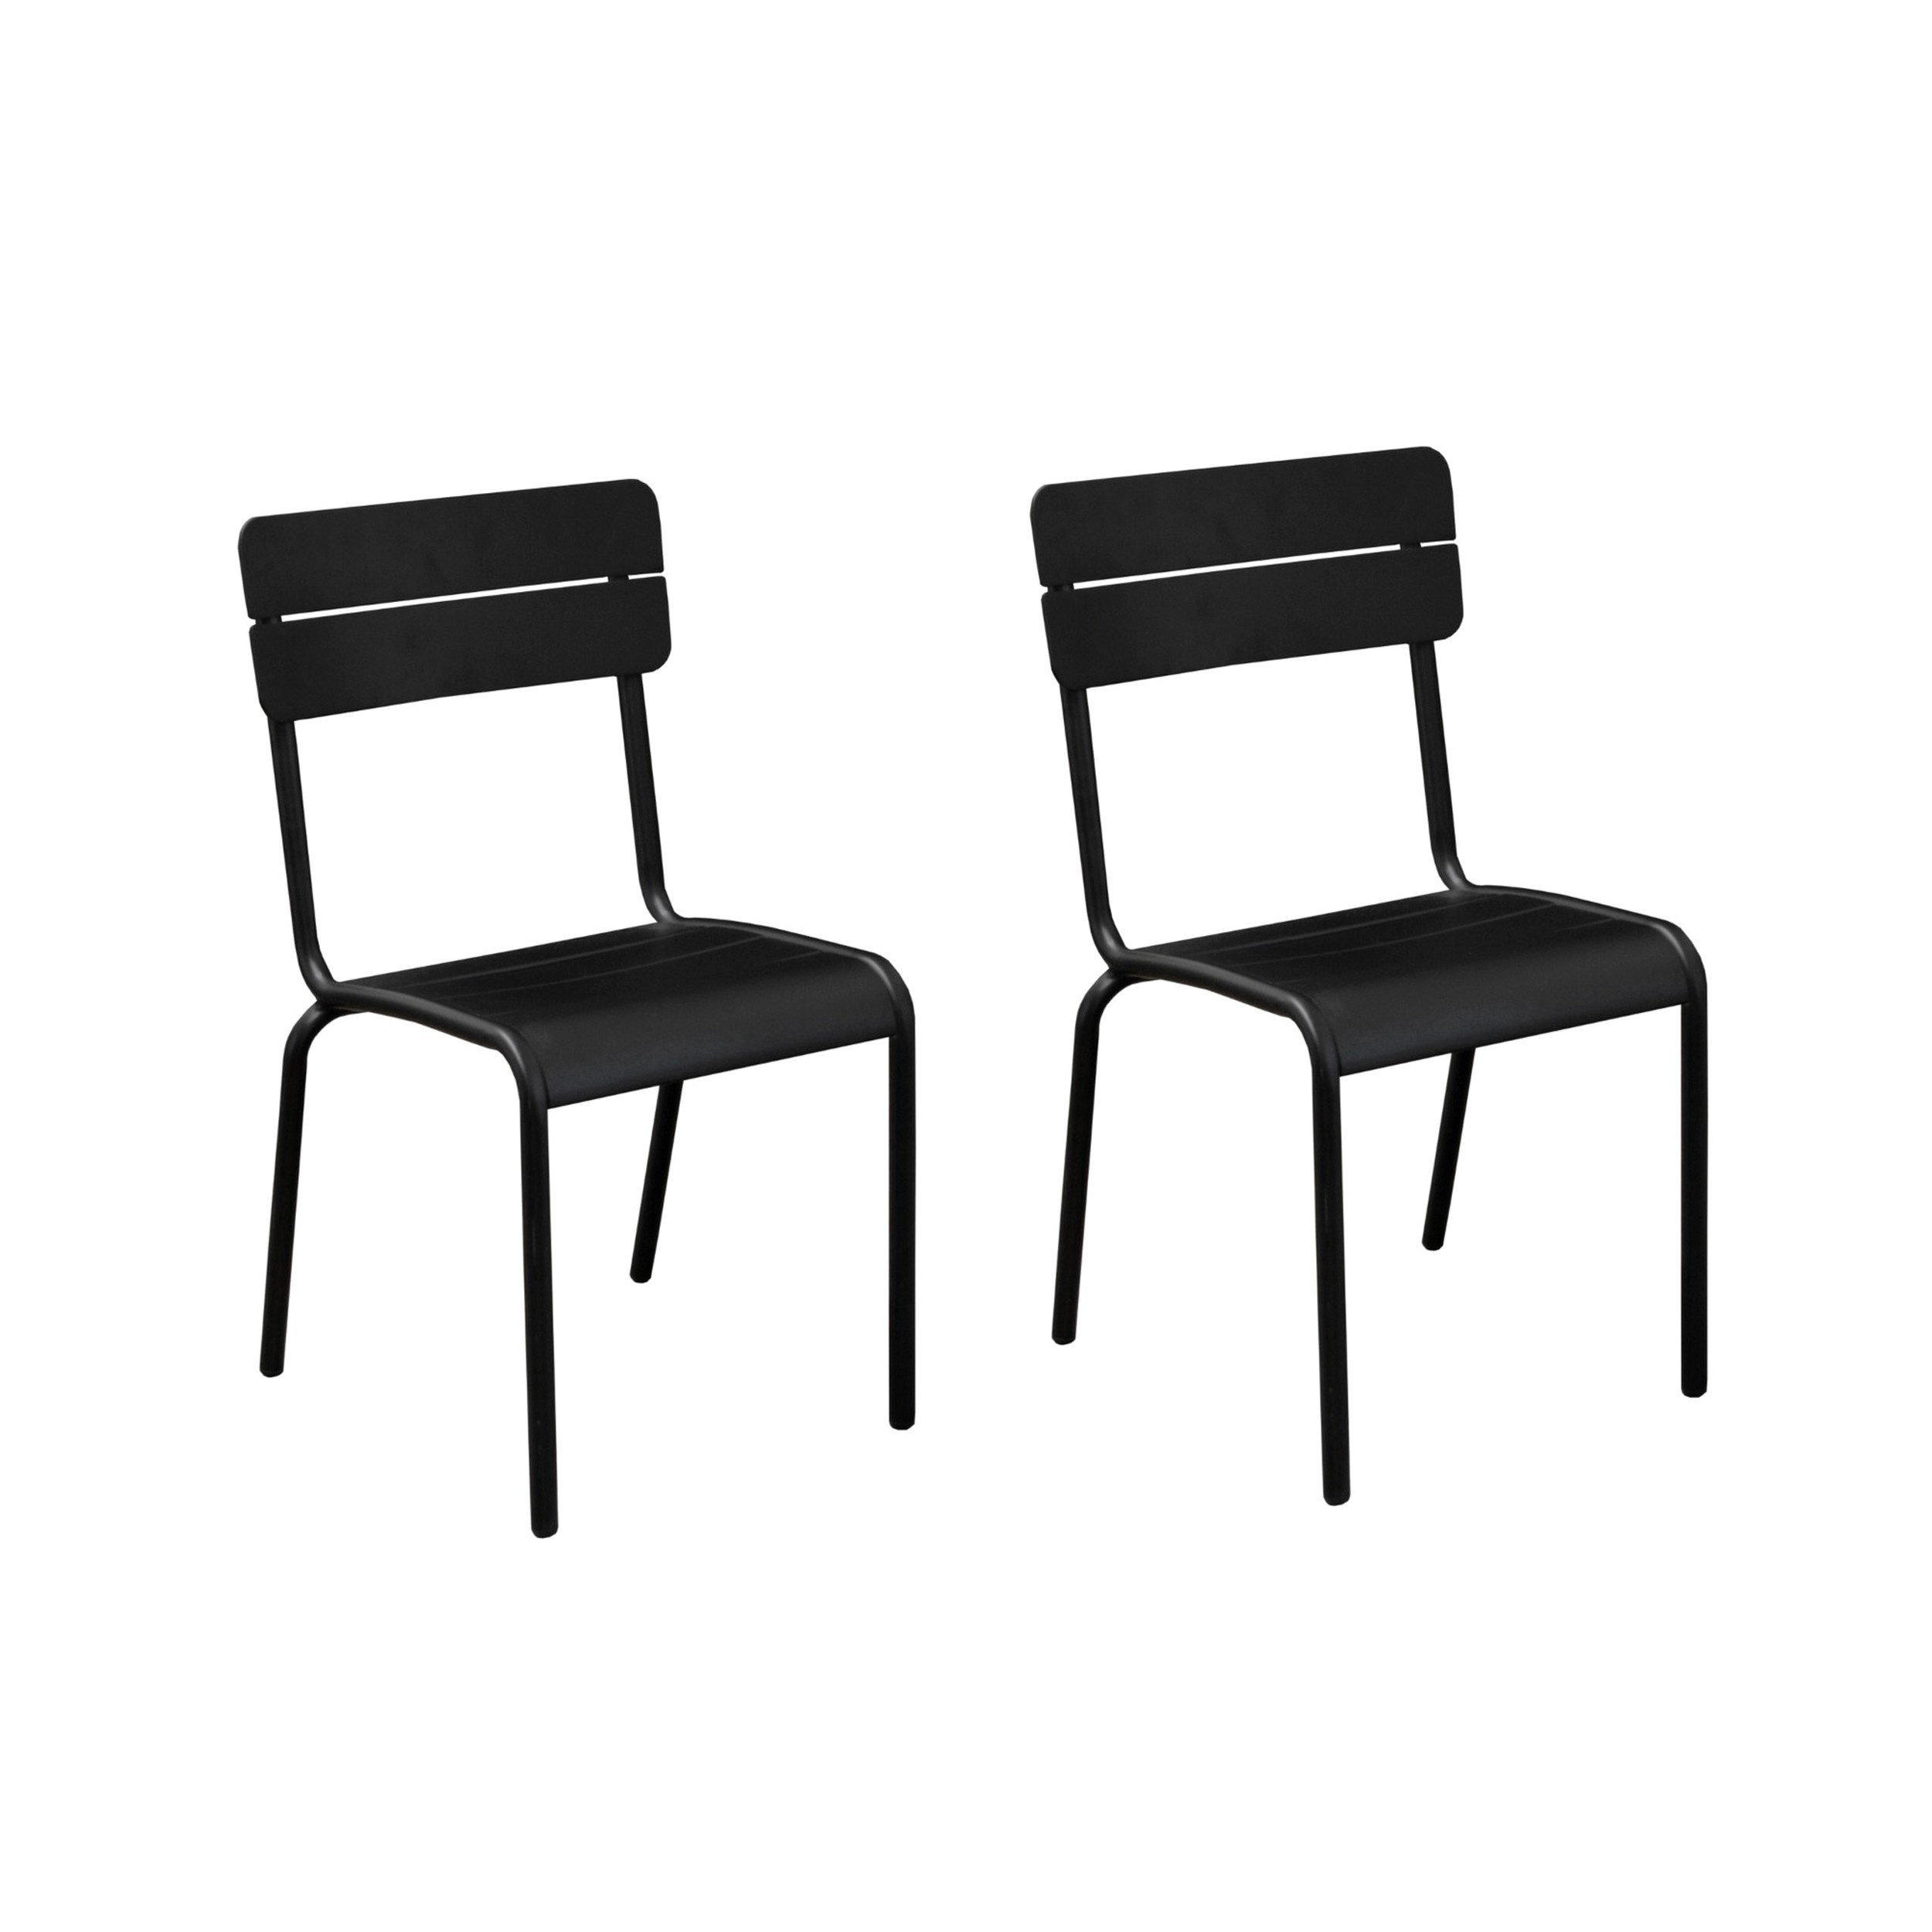 chaises jardin free fauteuils de jardin en teck aluminium. Black Bedroom Furniture Sets. Home Design Ideas